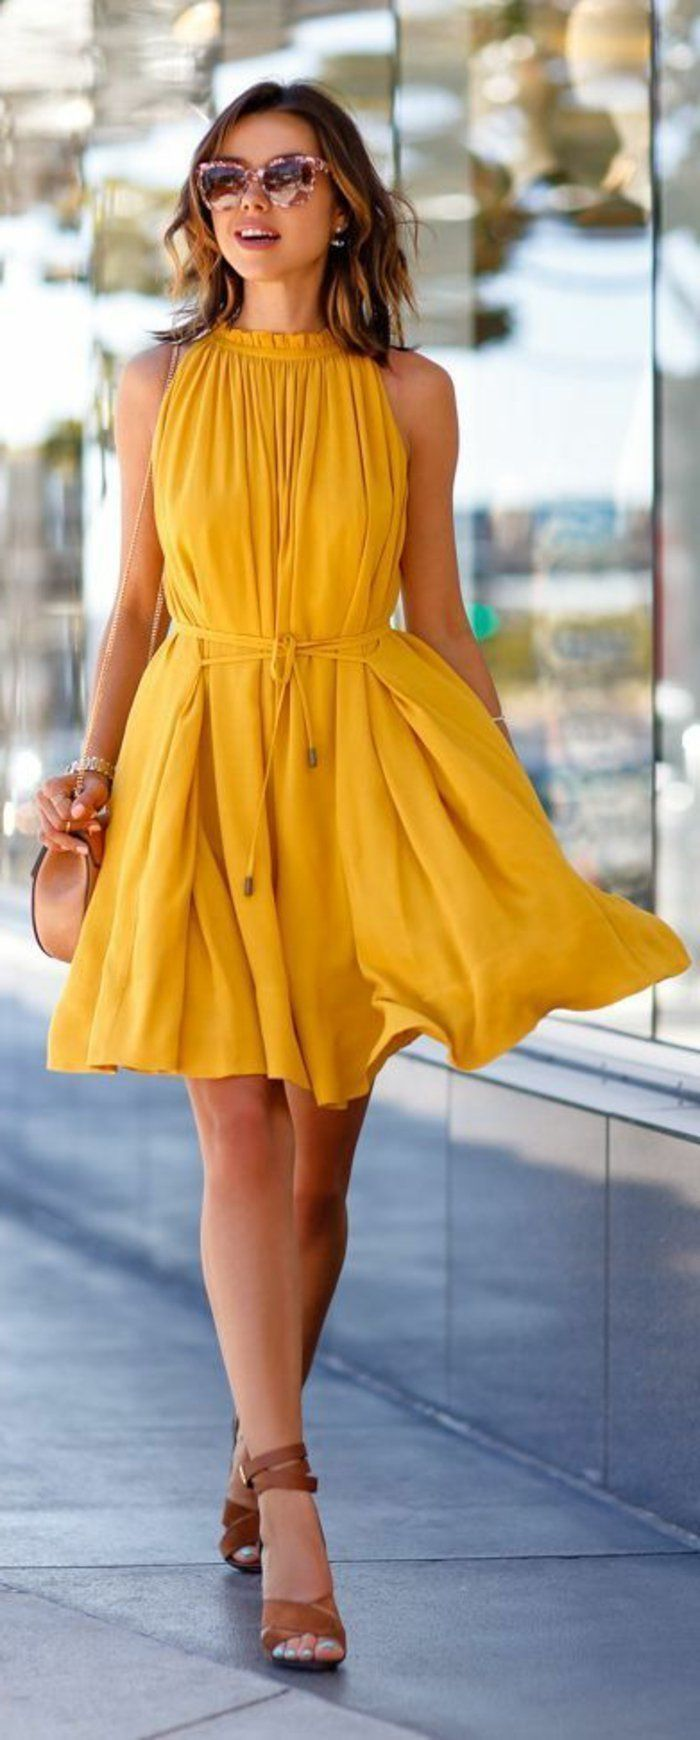 c1ddb84f267 37 Summer 2018 Chic and Trends Fashion